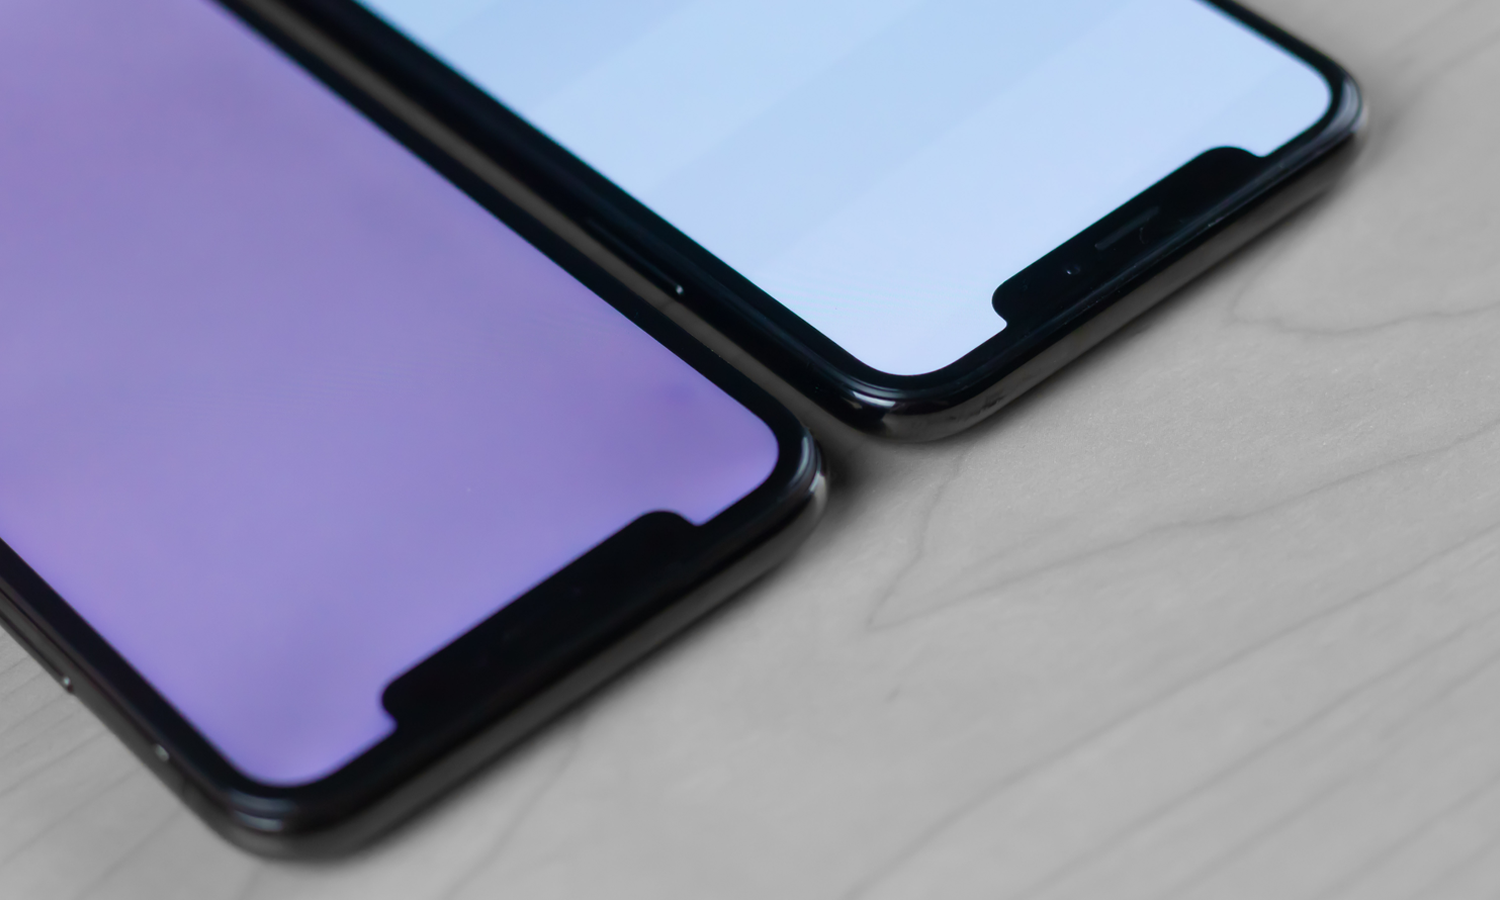 First Look at Aftermarket iPhone X LCDs